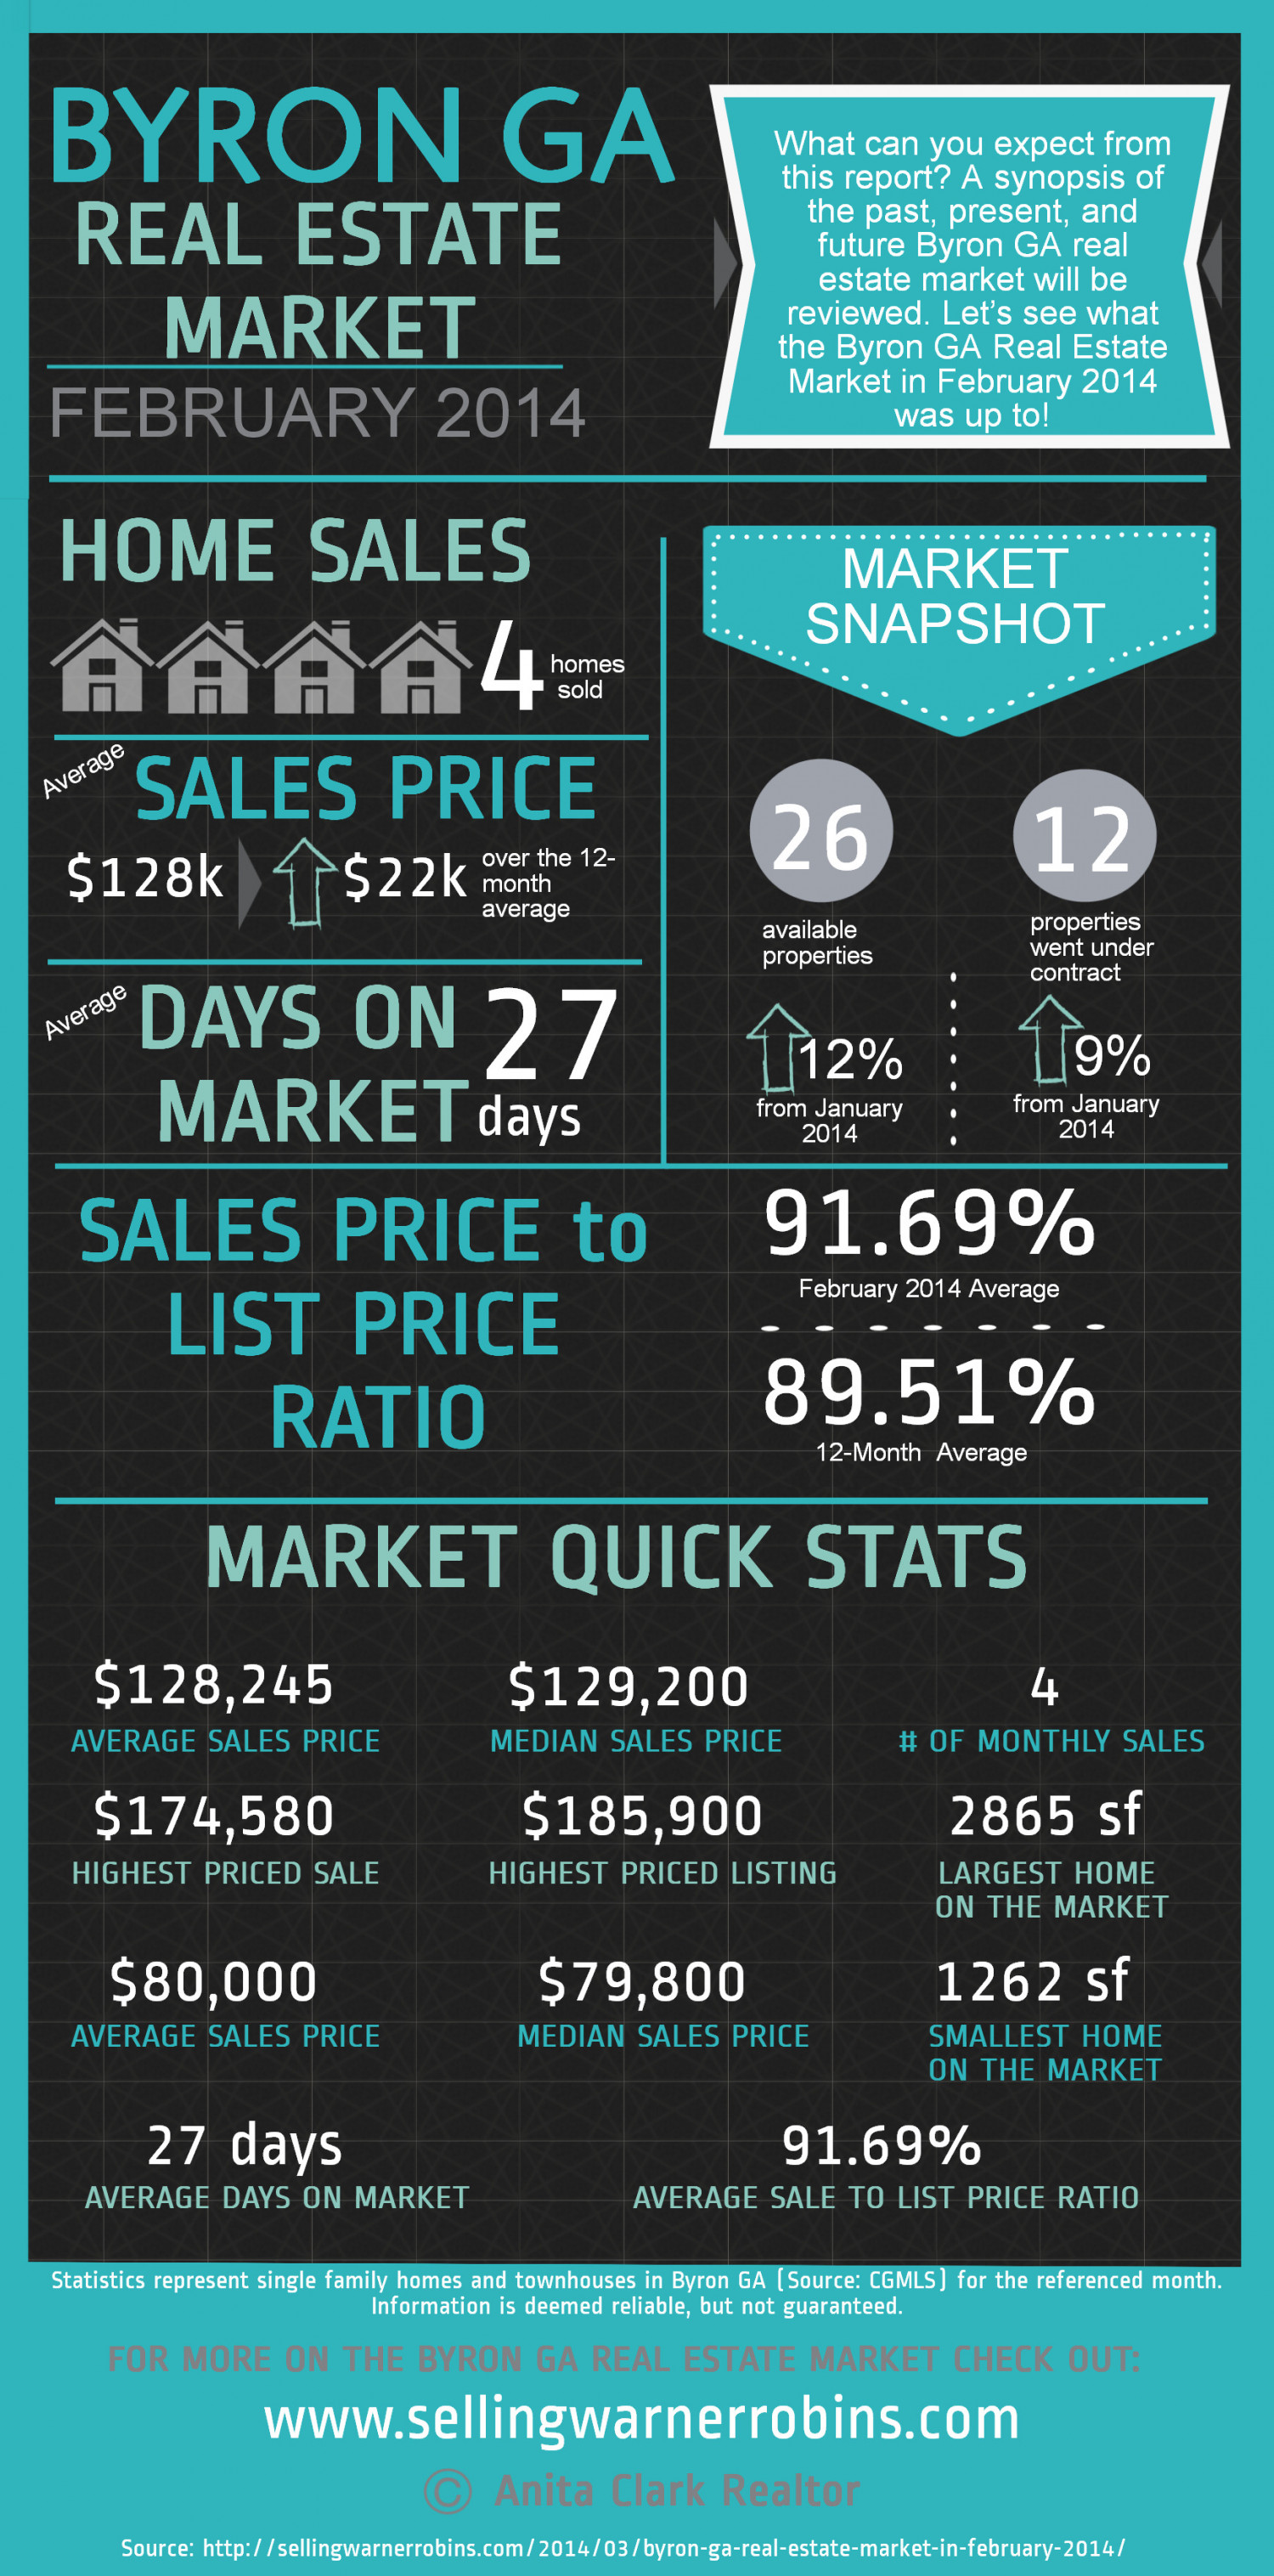 Byron GA Real Estate Market in February 2014 Infographic